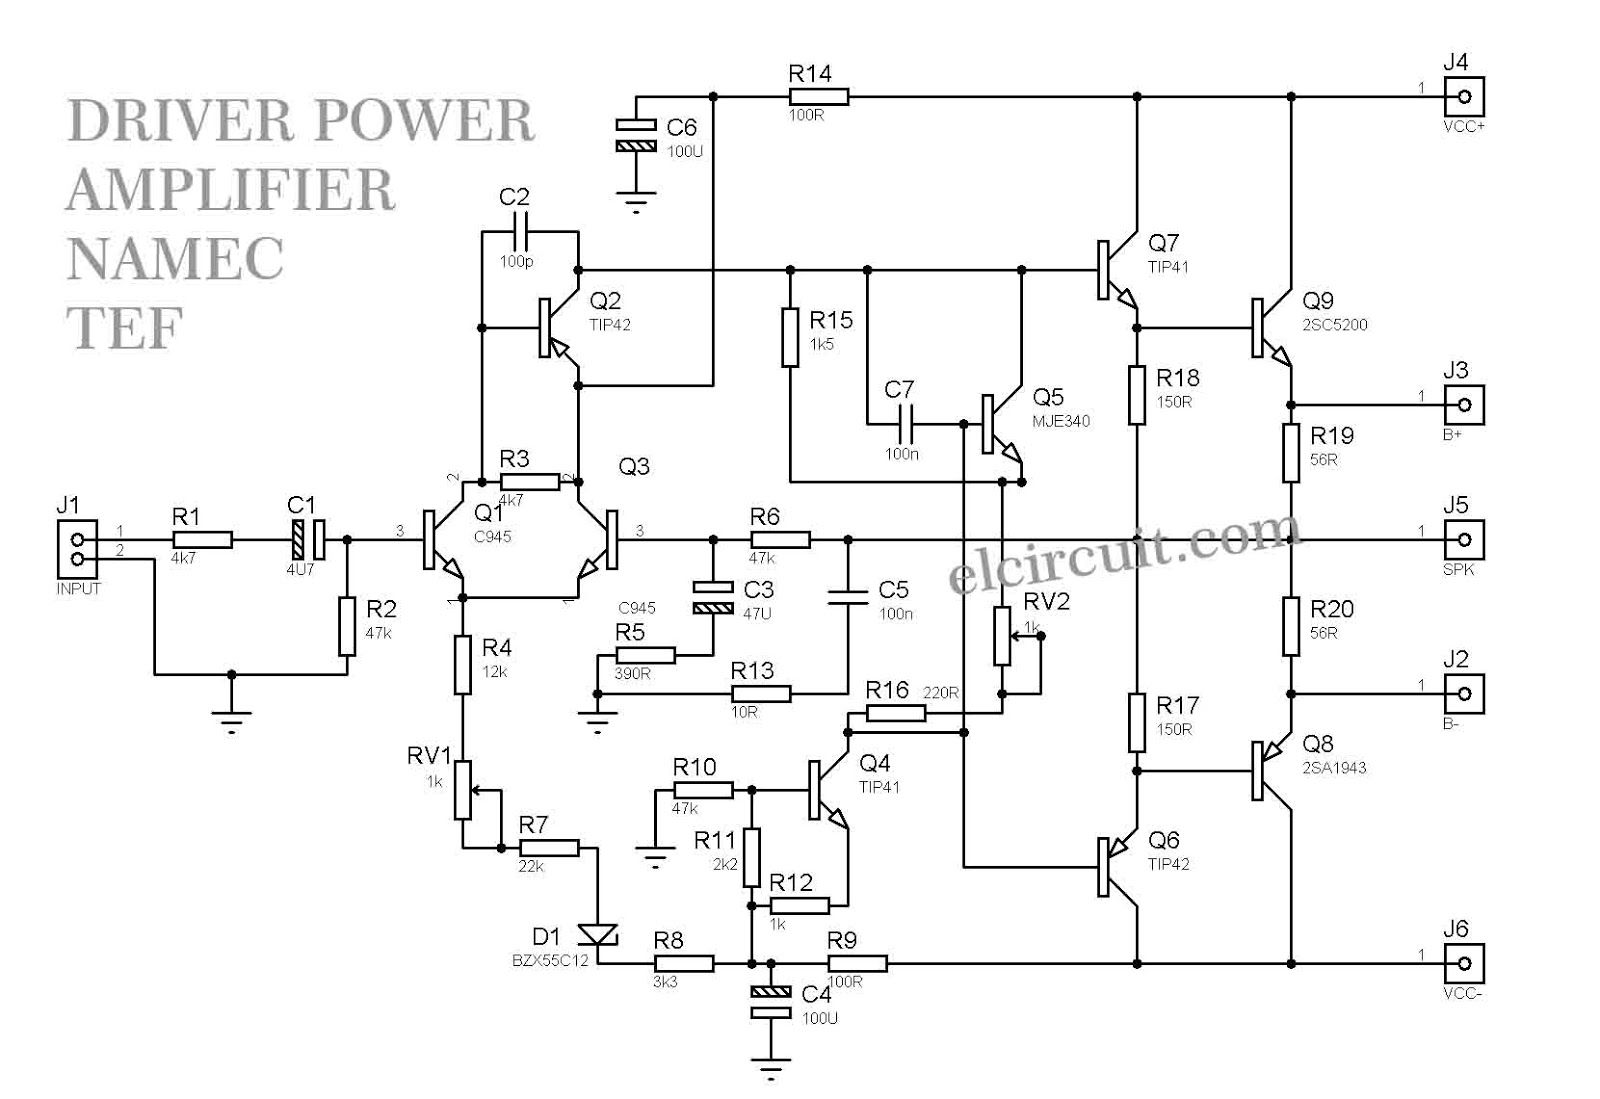 1000W Driver Power Amplifier Namec TEF - Electronic Circuit Electronic  Circuit, Circuit Diagram, Audio